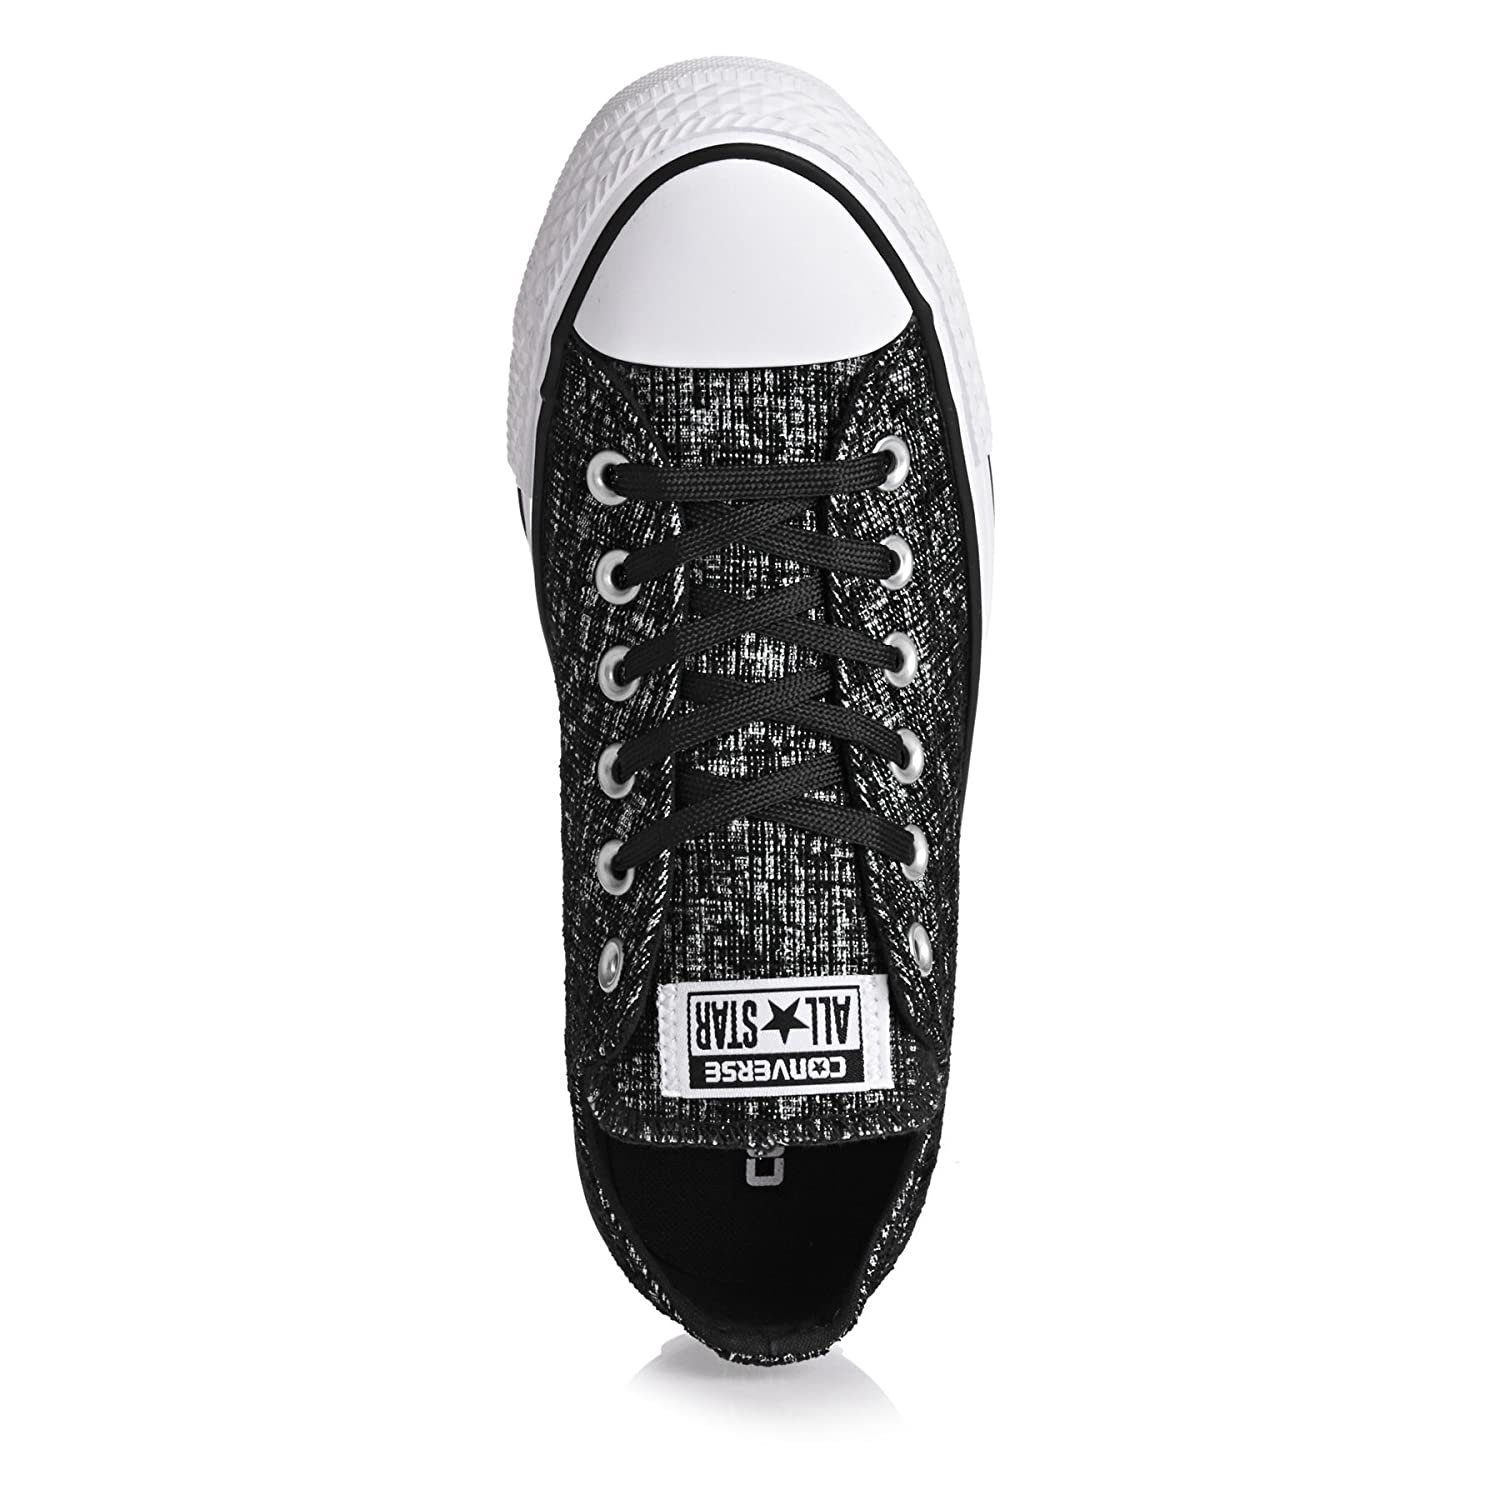 Converse Trainers - Converse Chuck Taylor All All All Star Schuhes - schwarz/Weiß  - e2236b